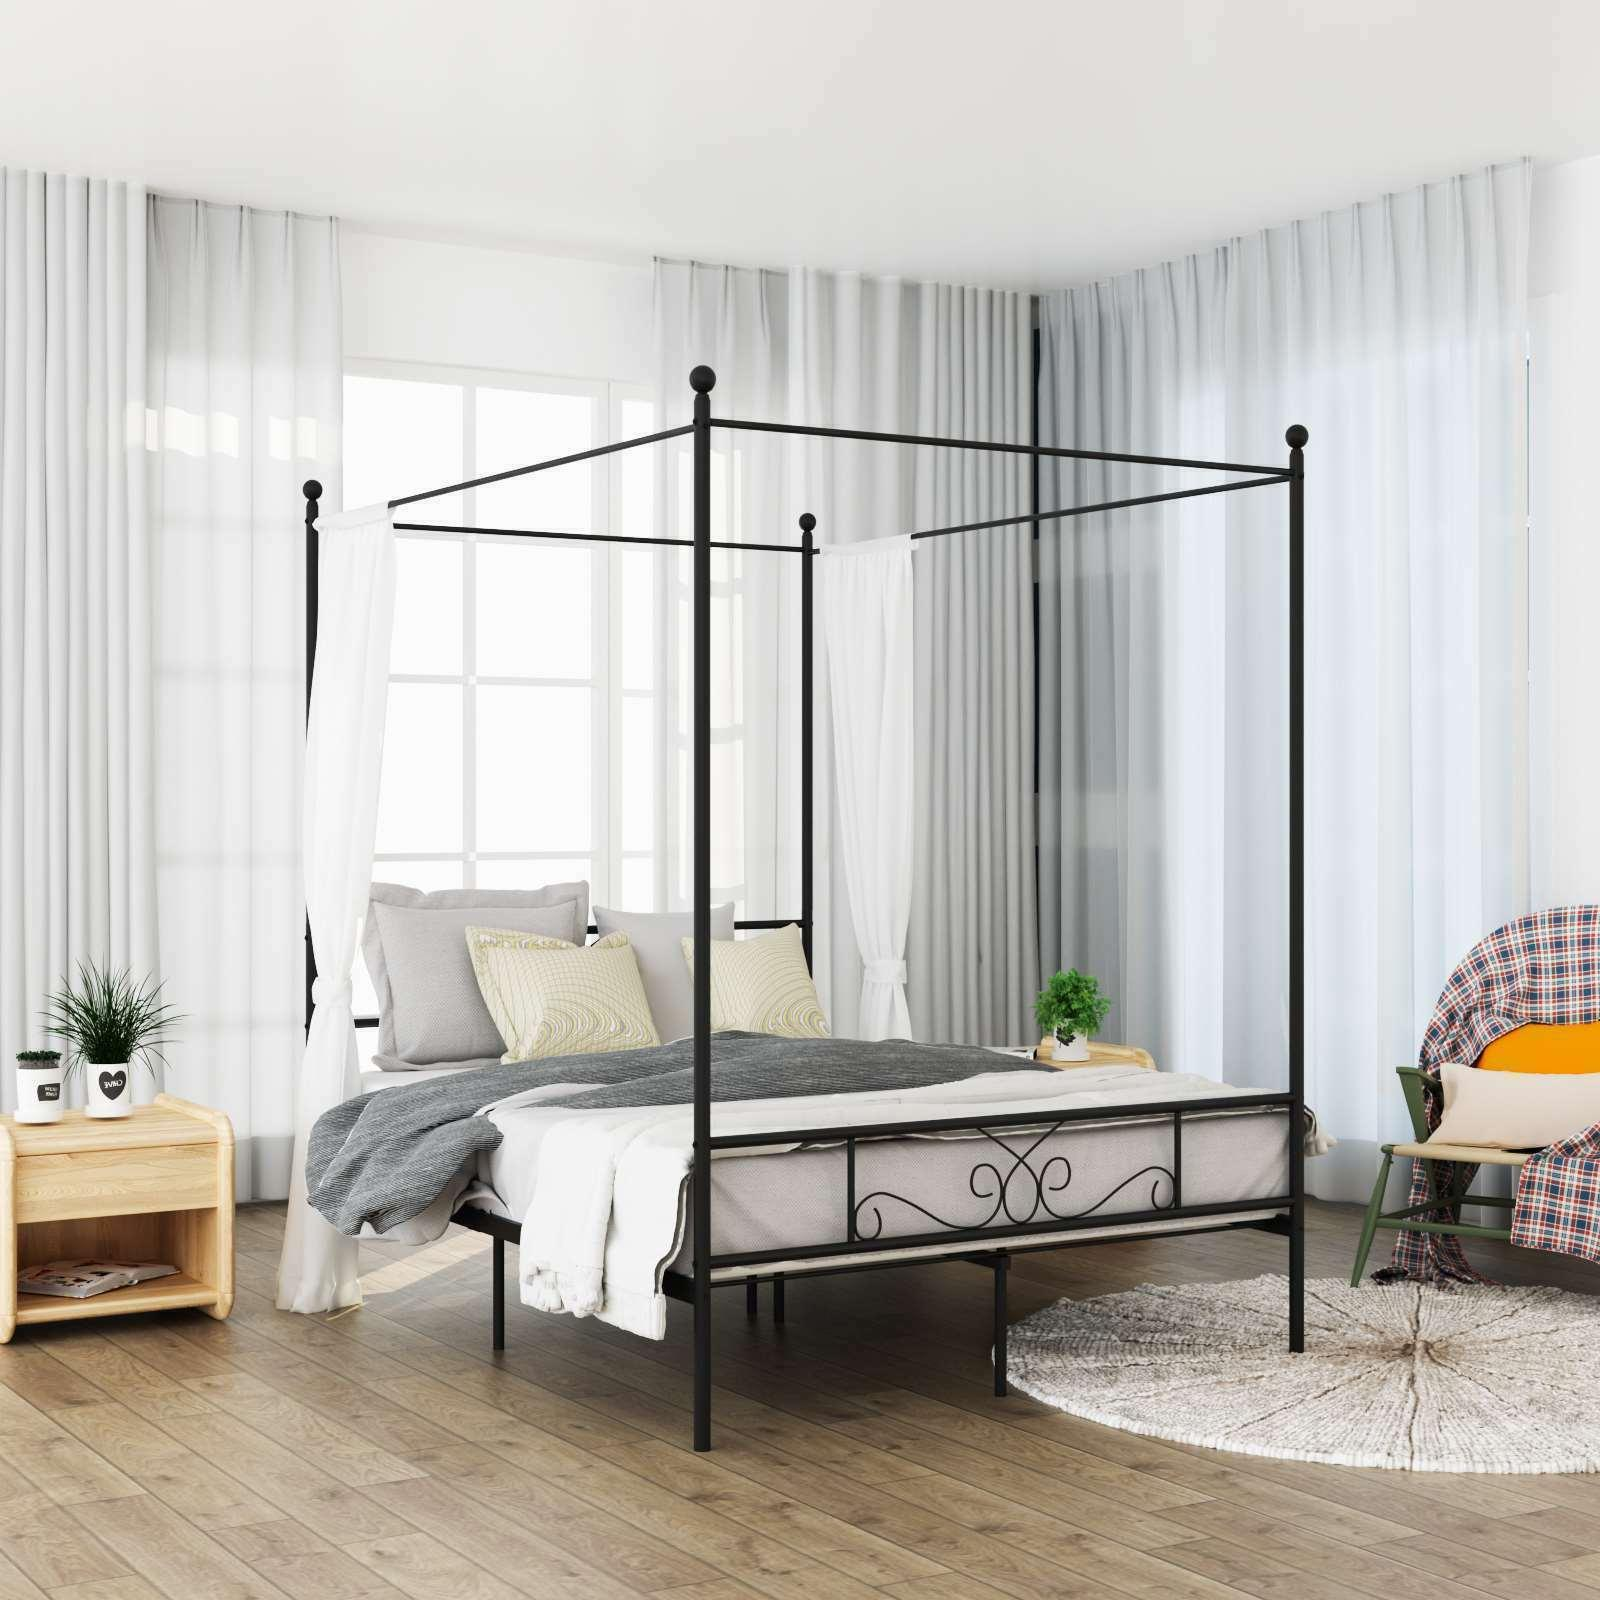 Queen Frame with Headboard